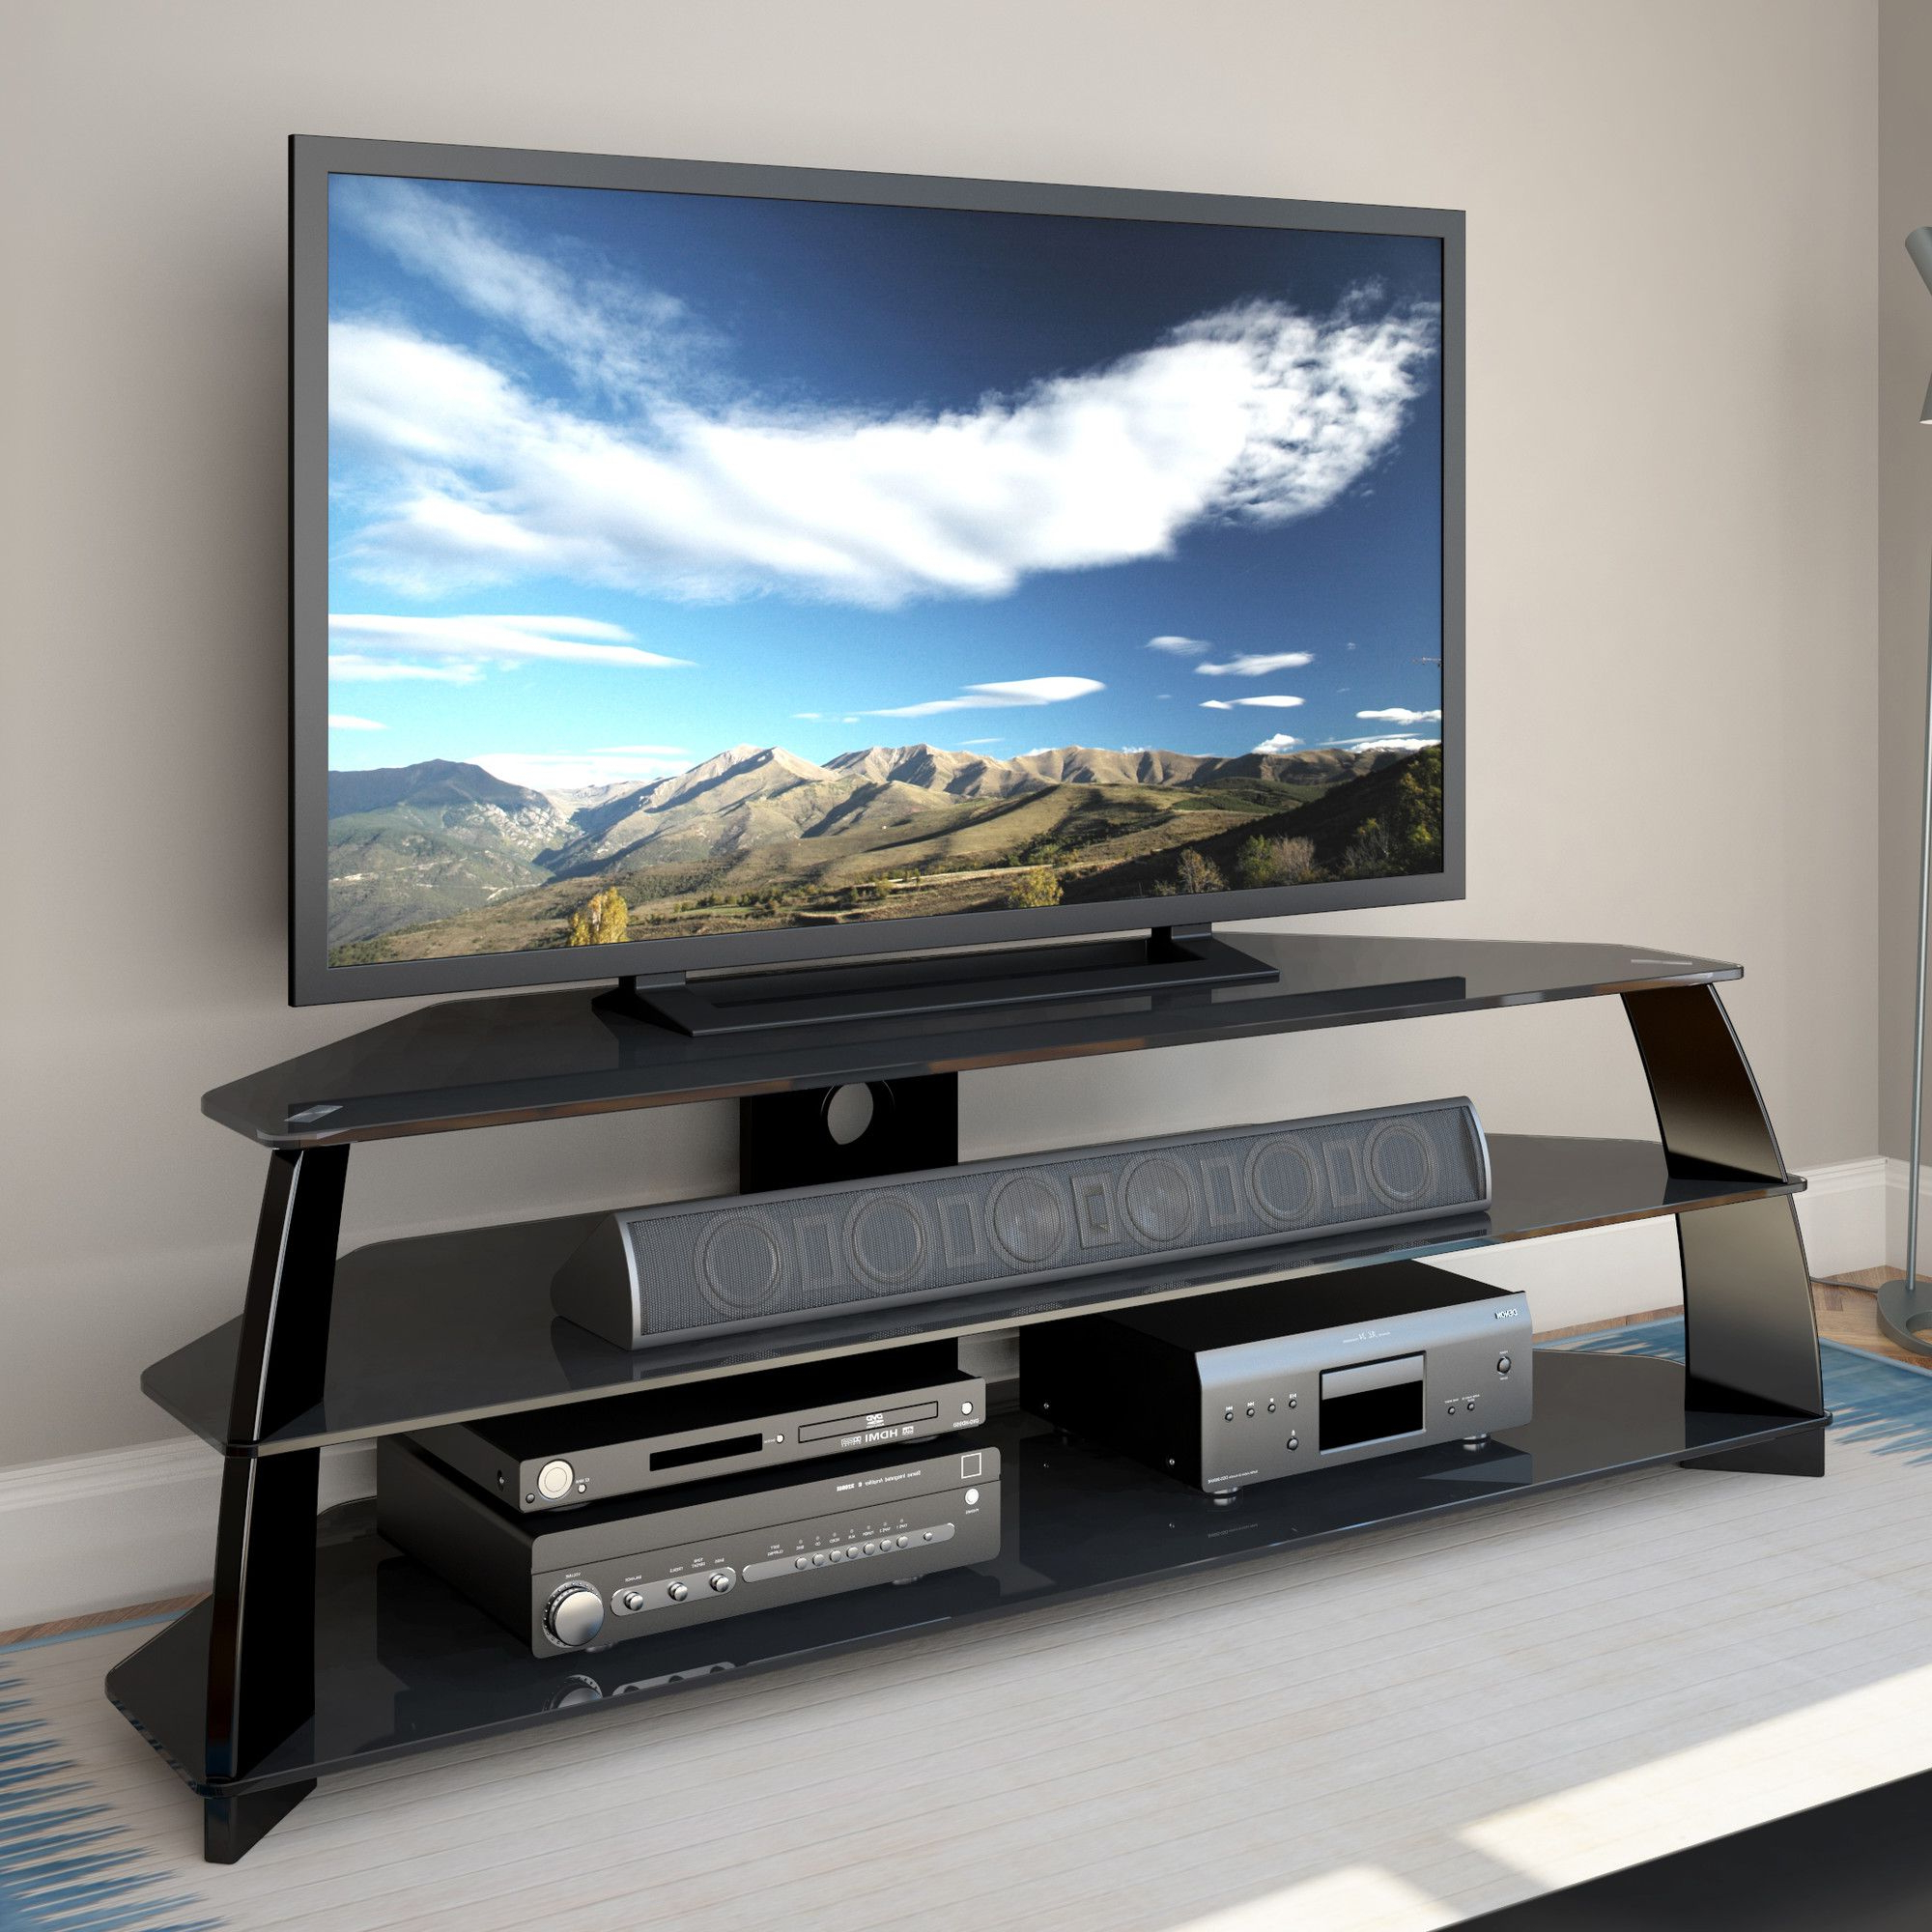 """Online Home Store For Furniture, Decor, Outdoors & More Intended For Well Known Brigner Tv Stands For Tvs Up To 65"""" (View 7 of 25)"""